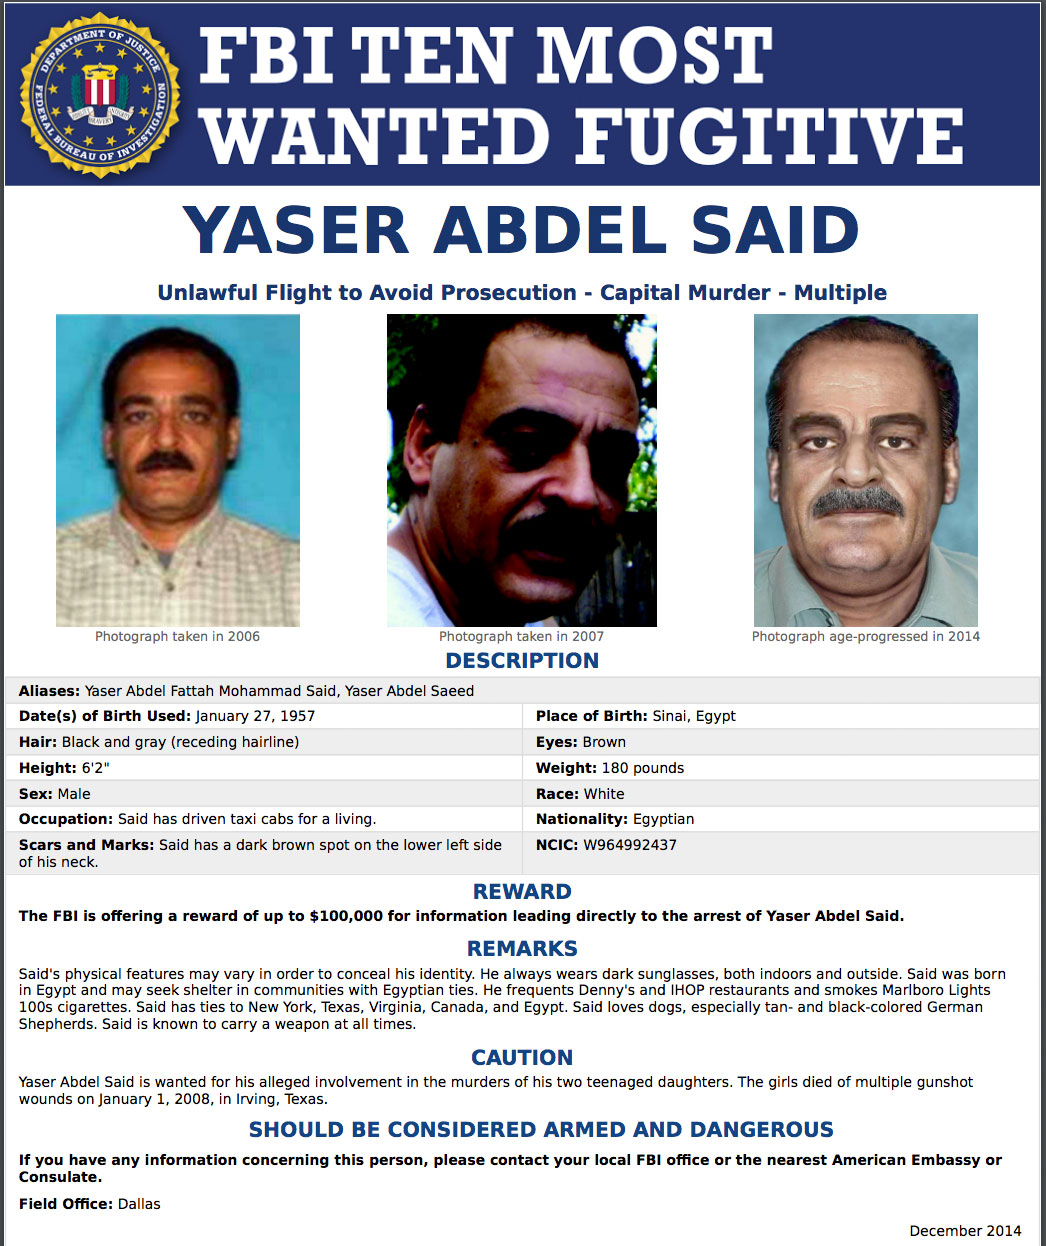 yaser-said-fbi-most-wanted